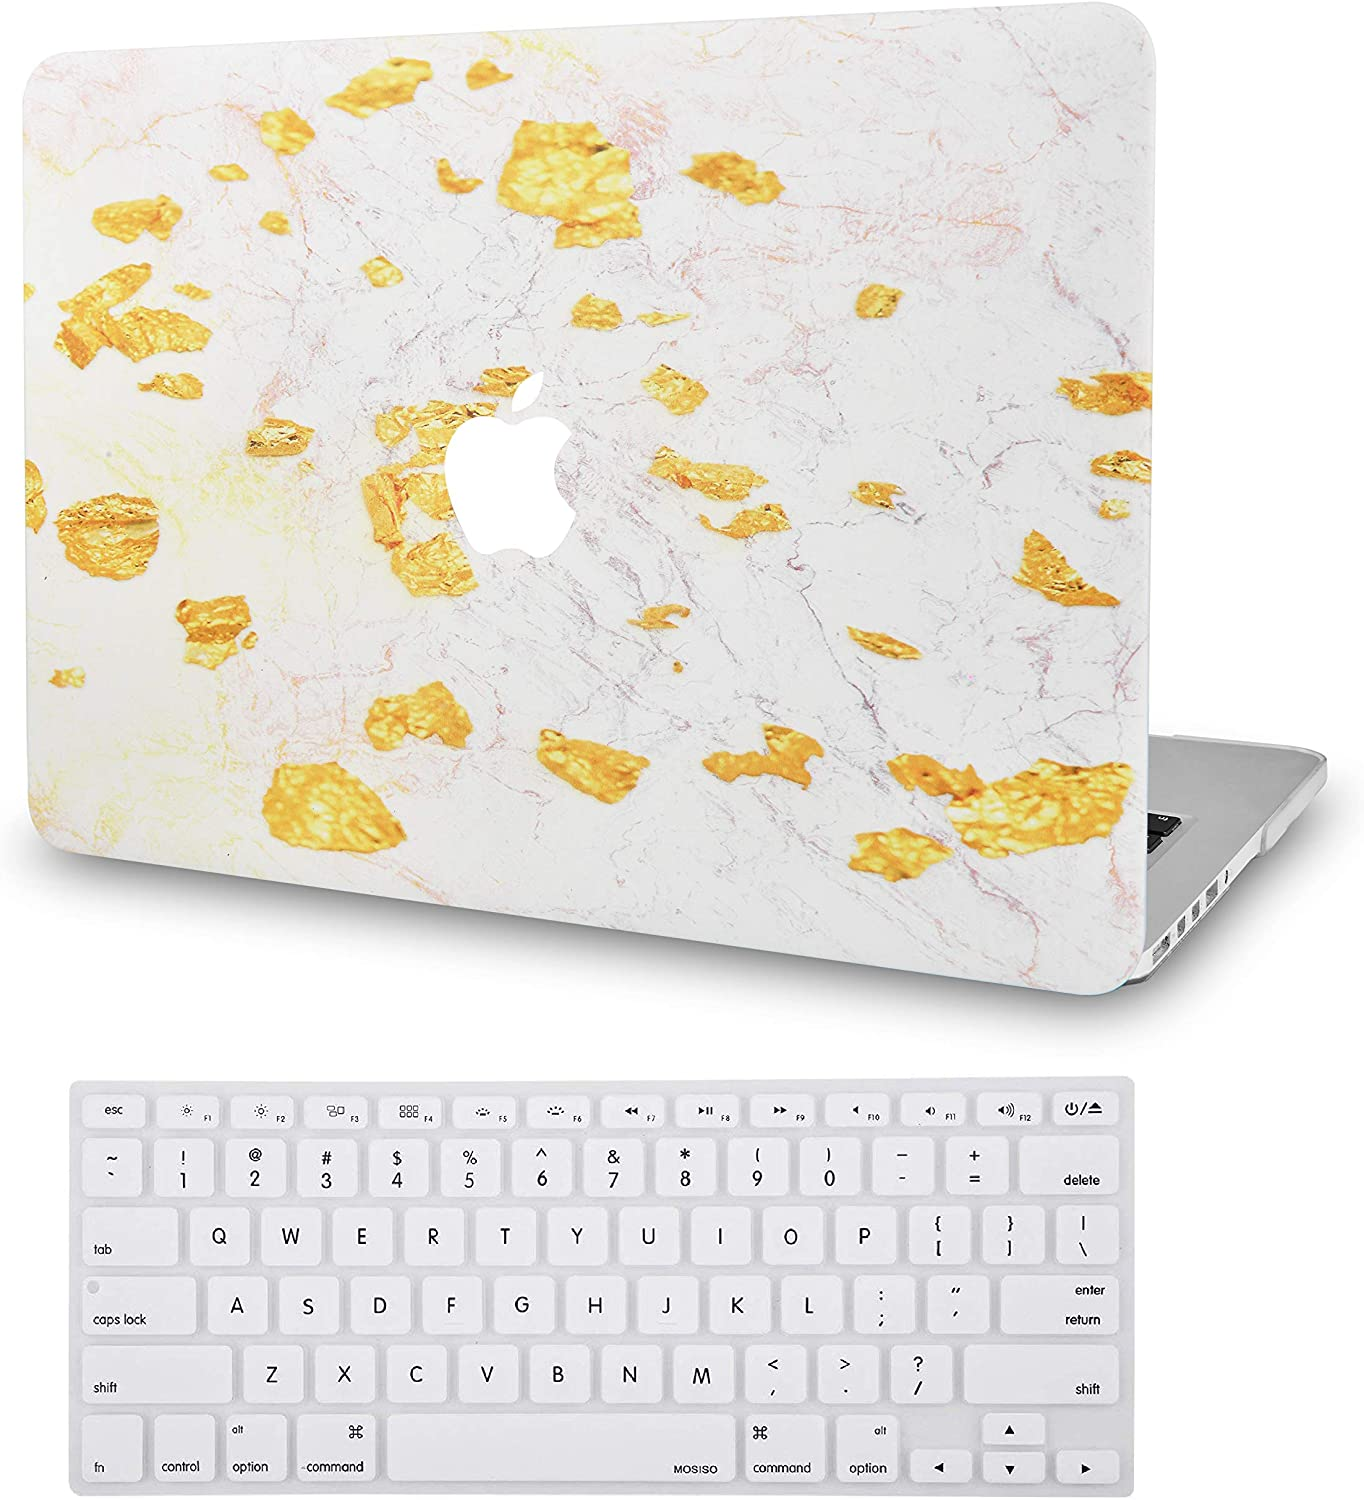 LuvCase 2 in 1 Laptop Case Compatible with MacBook Air 13 Inch (2018-2020) A1932 (Touch ID) Retina Display Rubberized Plastic Hard Shell Cover & Keyboard Cover (Gold Foil Marble)